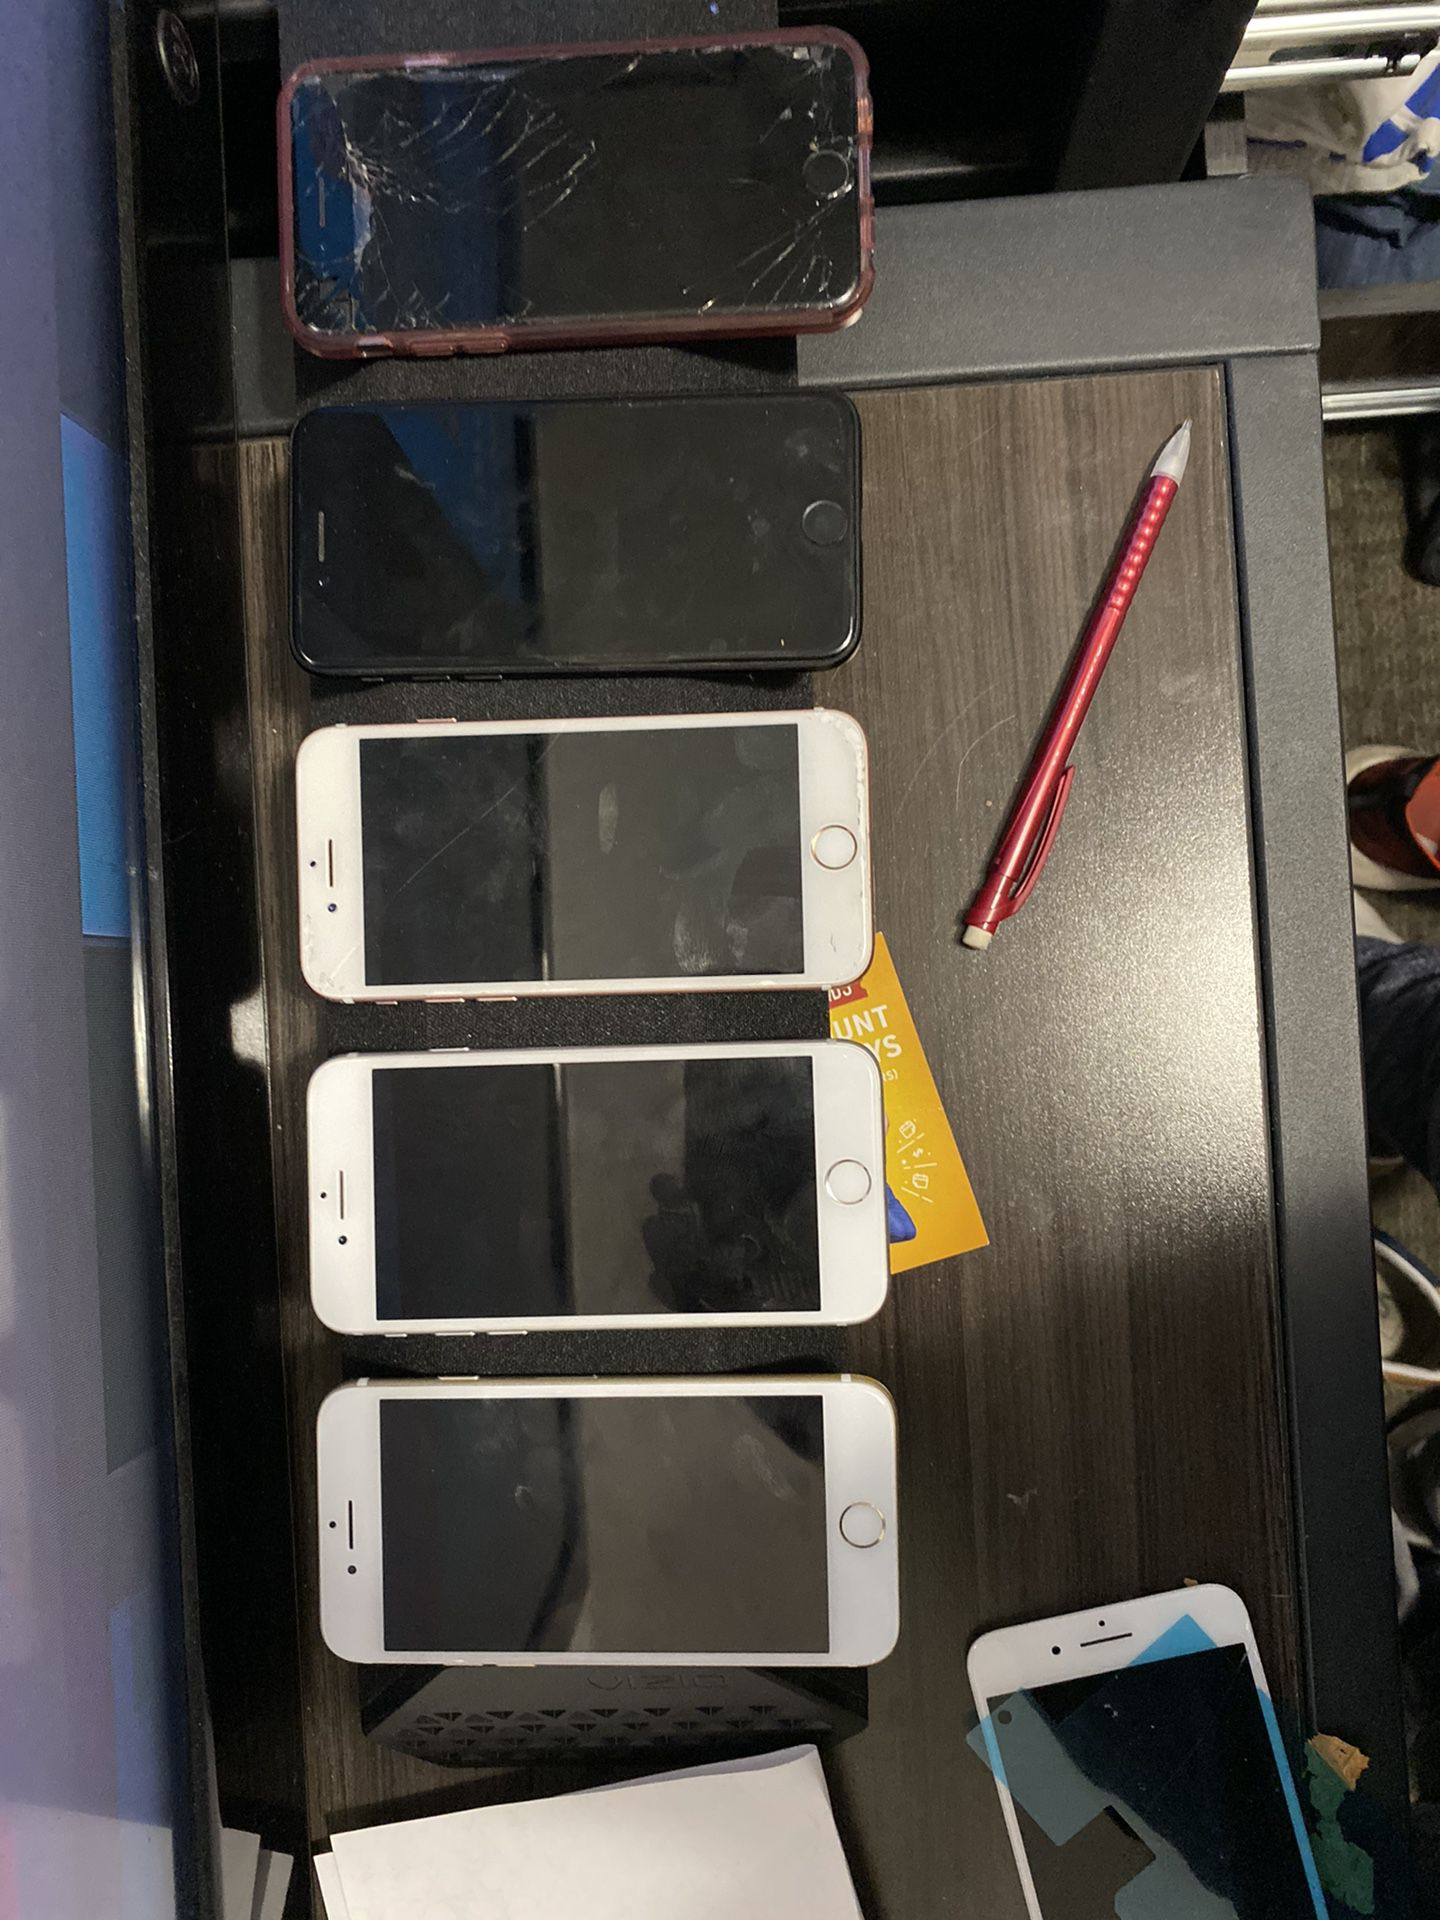 5 iPhone 7's various conditions